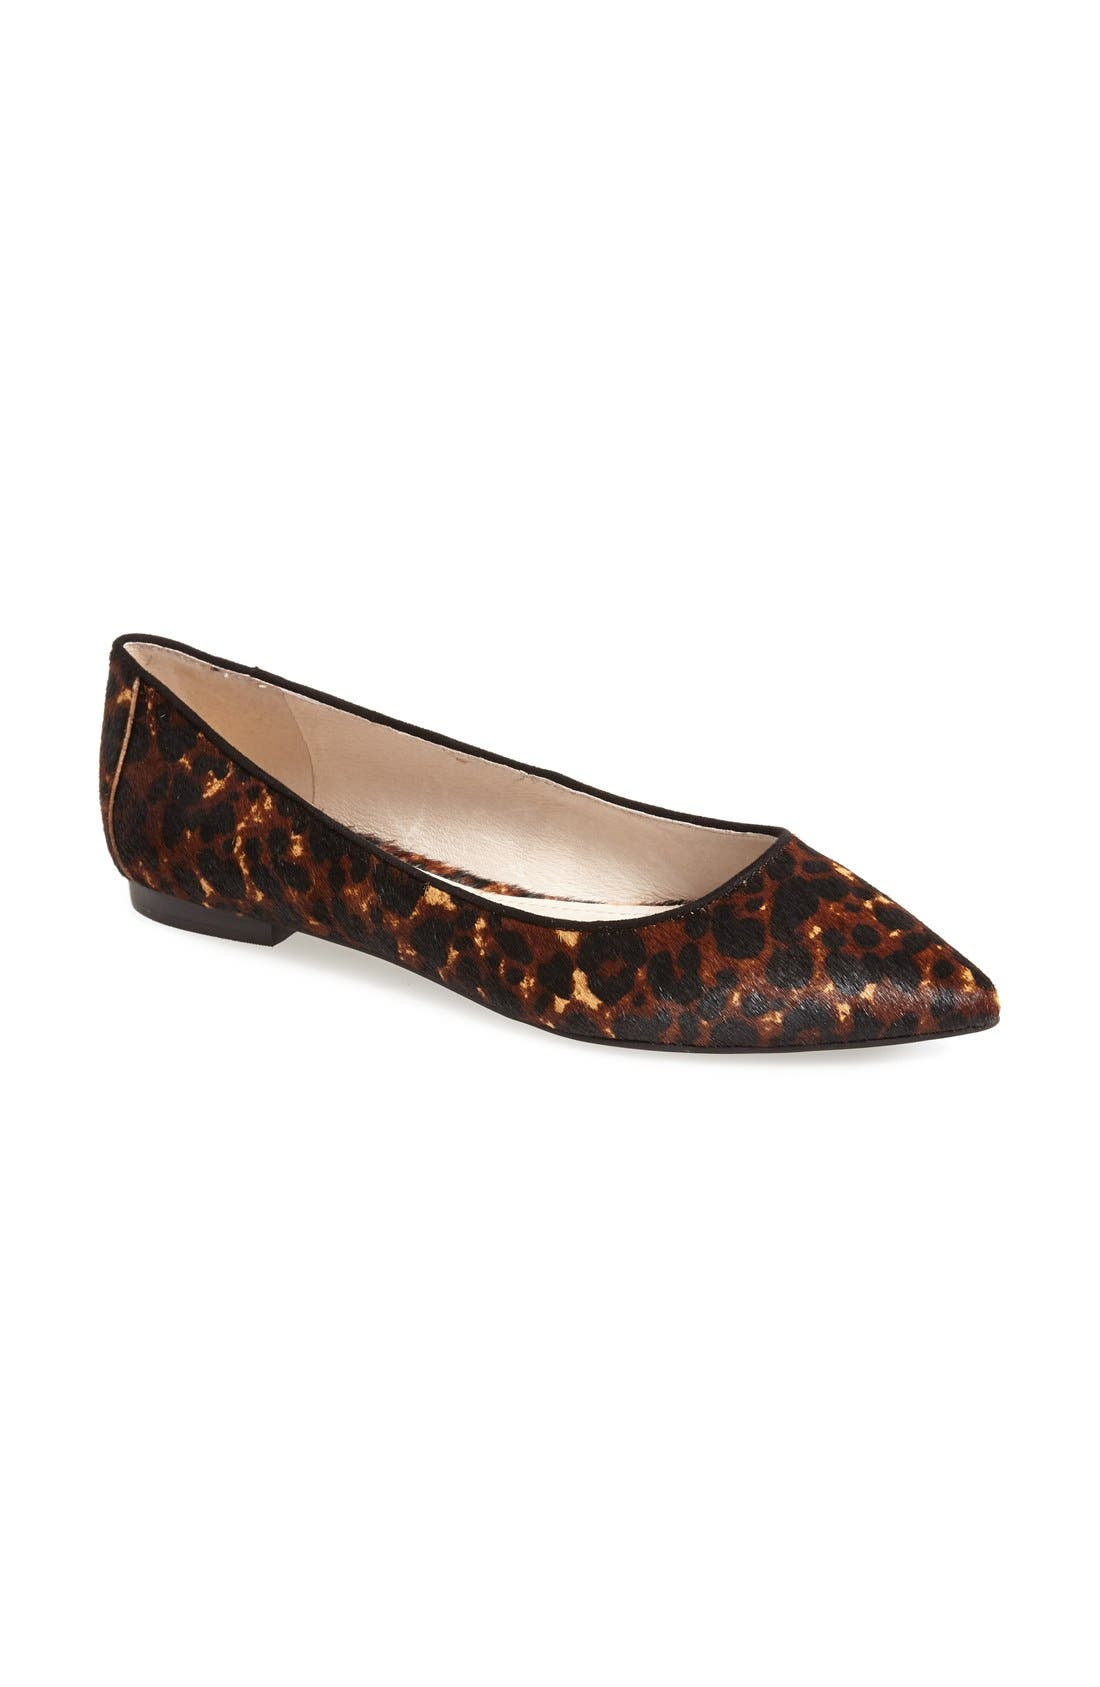 Alternate Image 1 Selected - Vince Camuto 'Hasse' Pointy Toe Flat (Women)